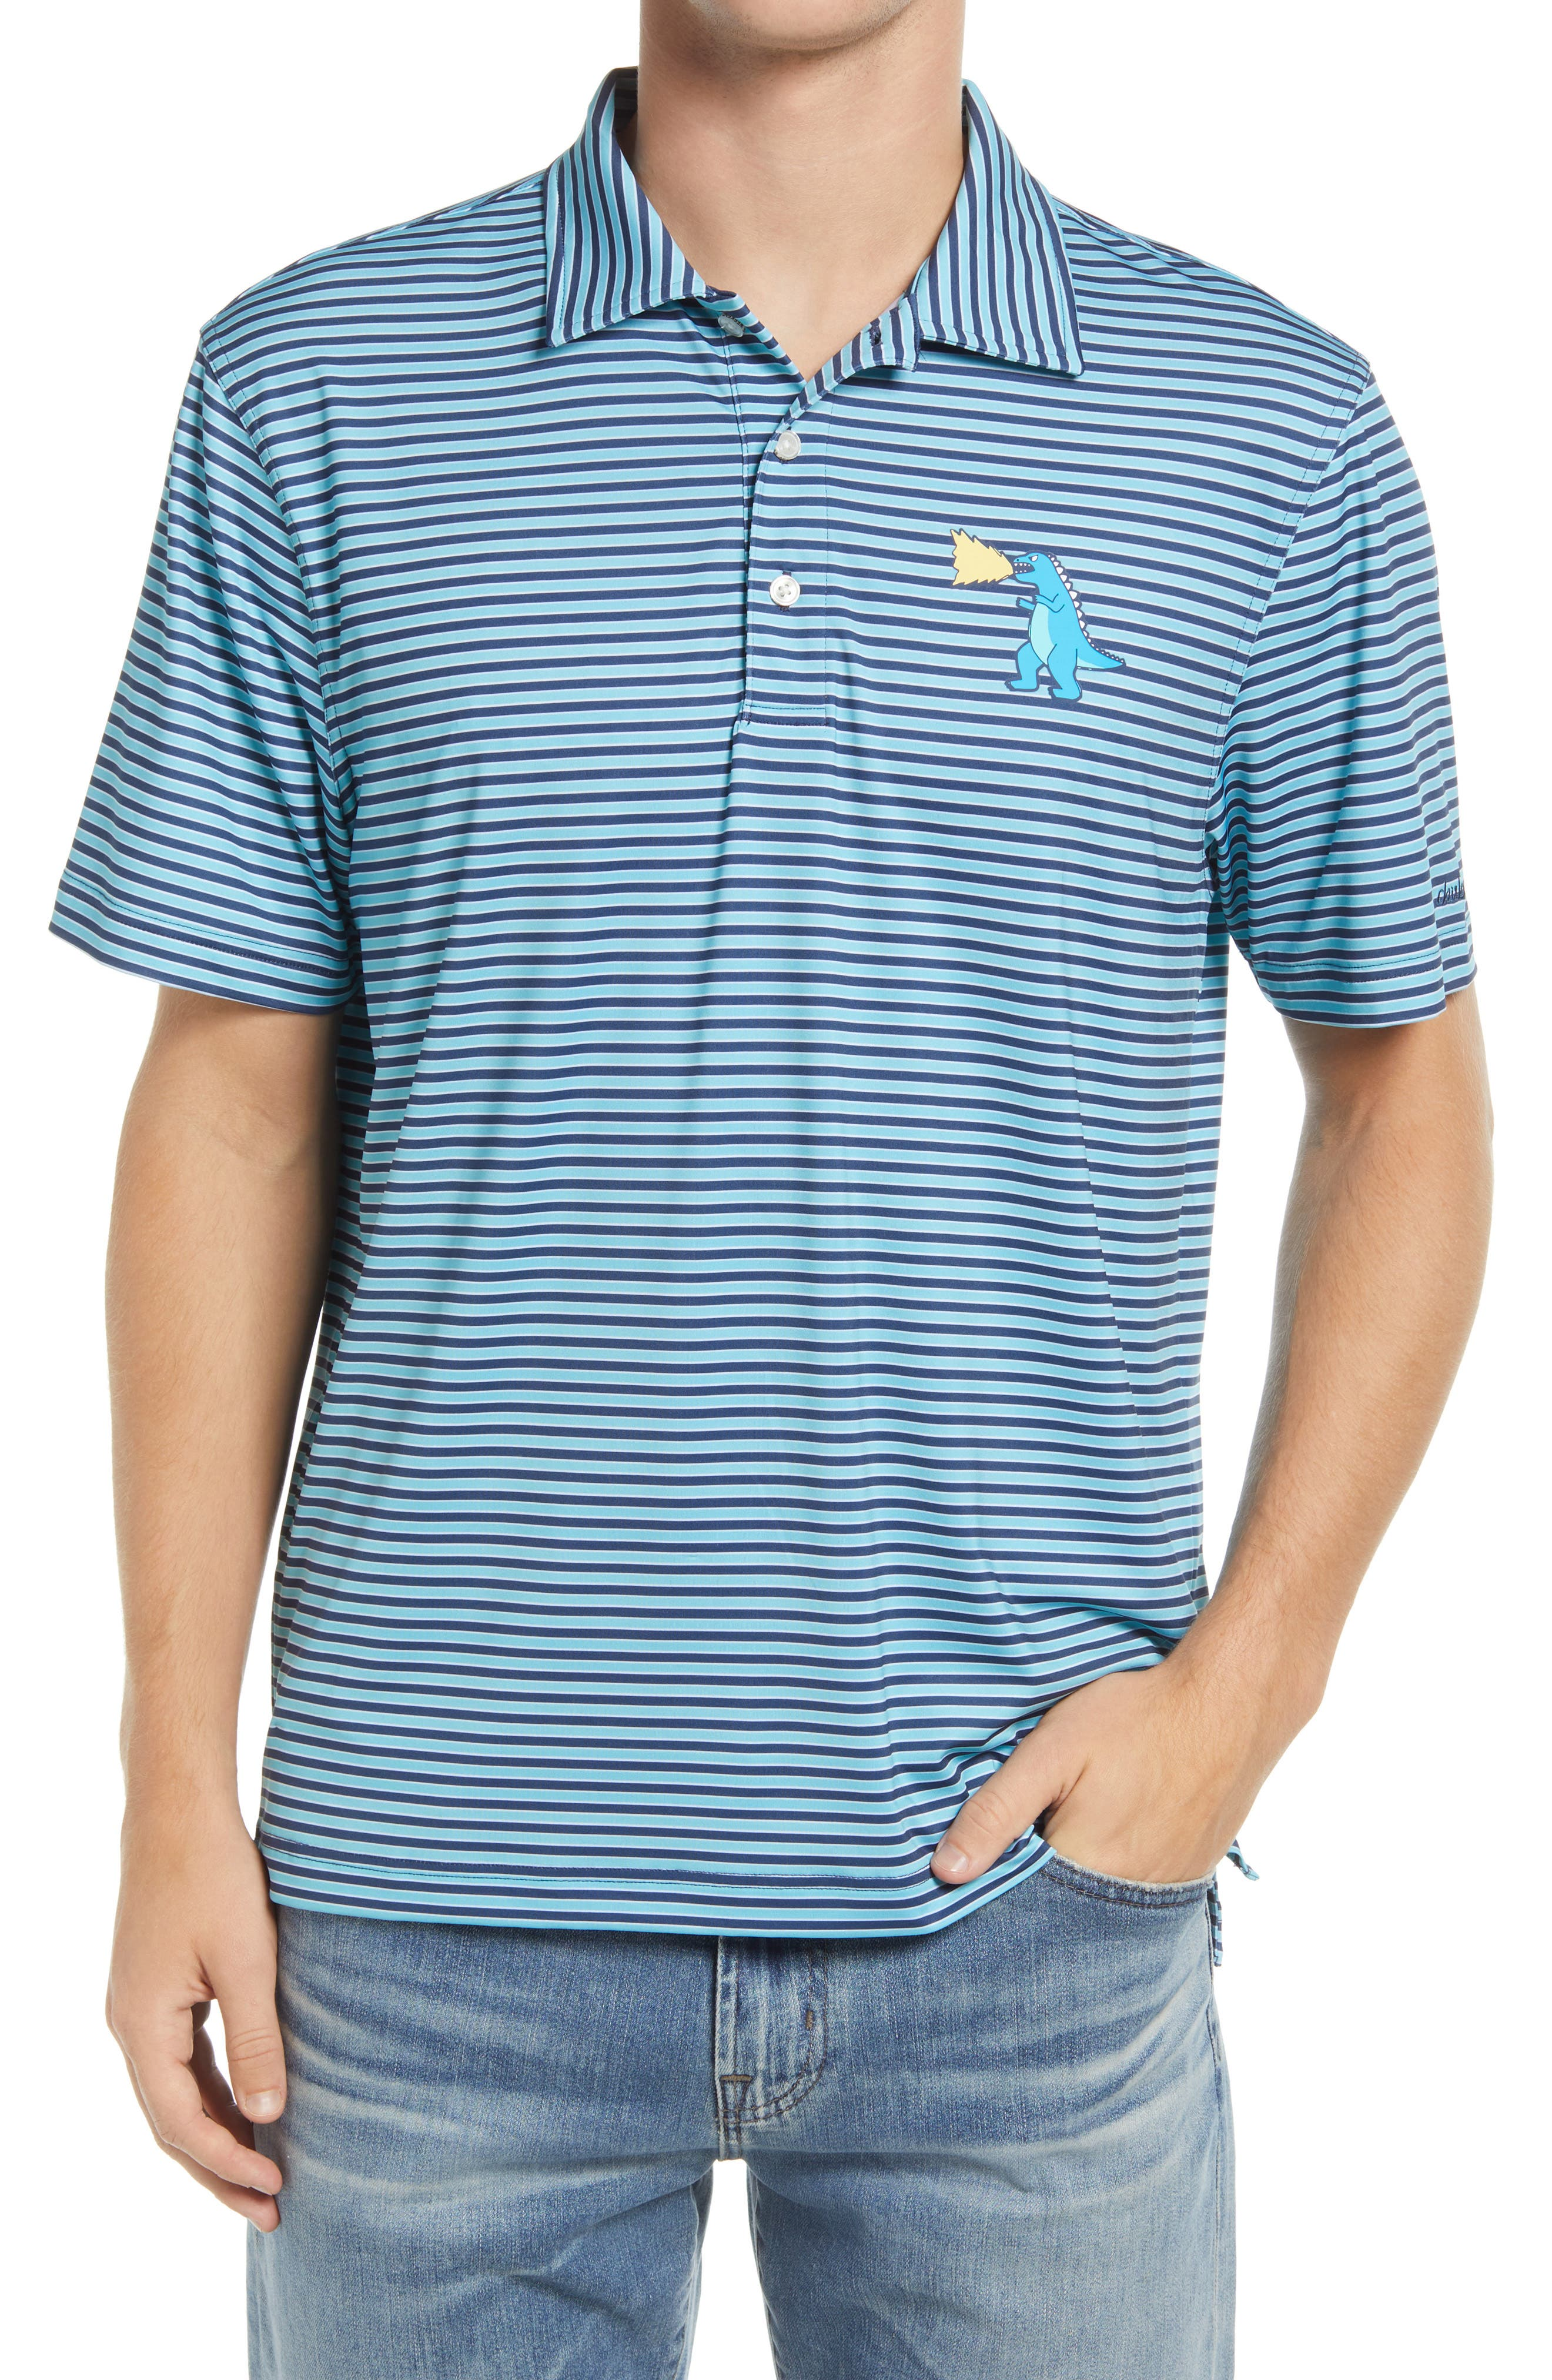 The Fired Up Stripe T-Rex Graphic Polo